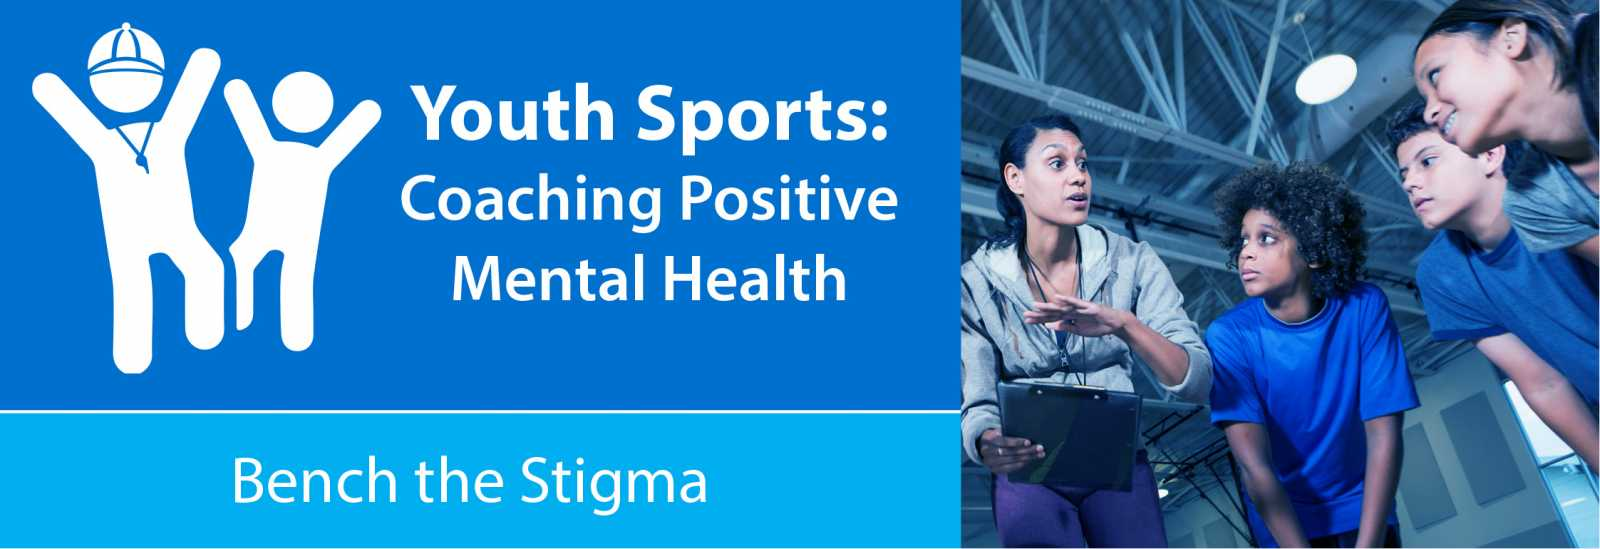 """Bench the Stigma"" Forum Continues Focus on Mental Health in Youth Sports"